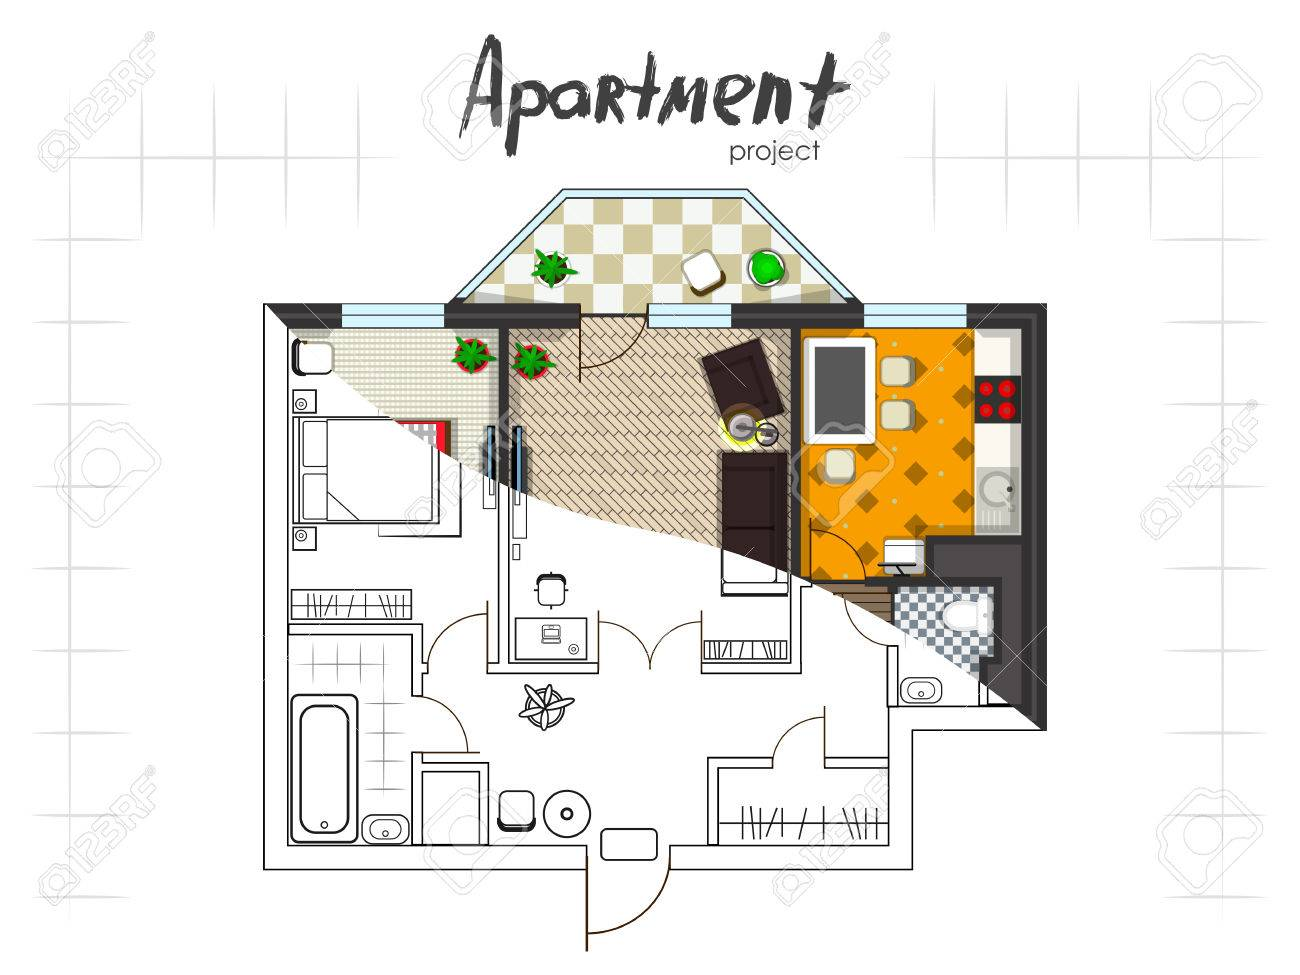 Apartment Project Floor Plan With Furniture Kitchen Living Room Two Bedroom And